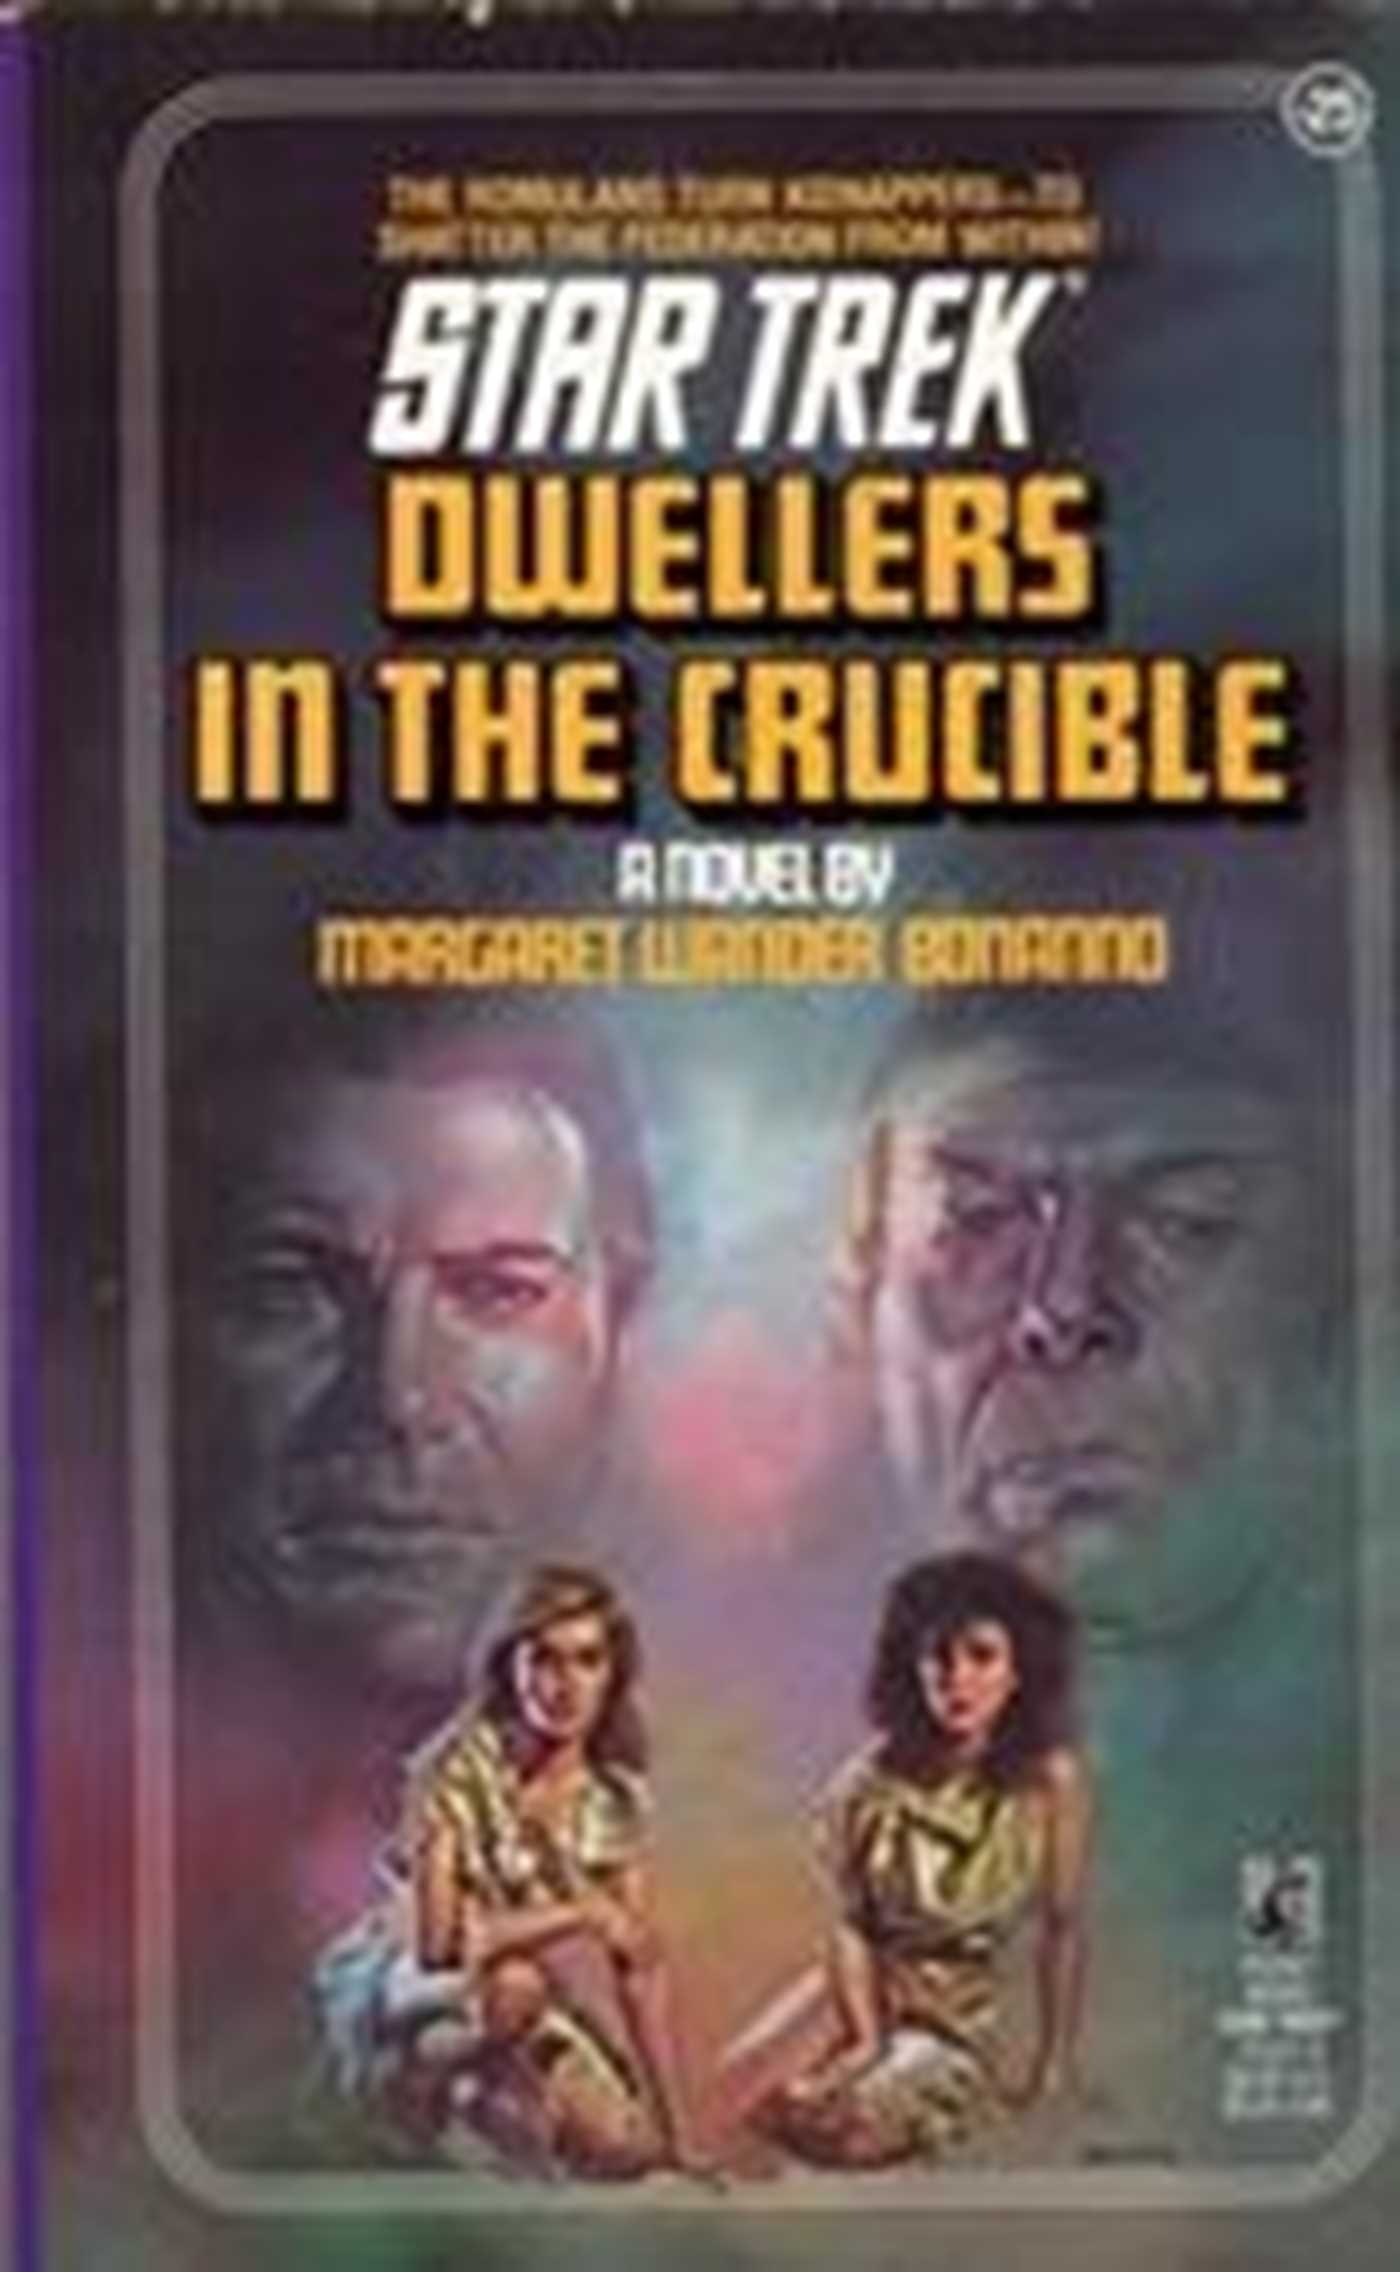 Dwellers-in-the-crucible-9780743419765_hr